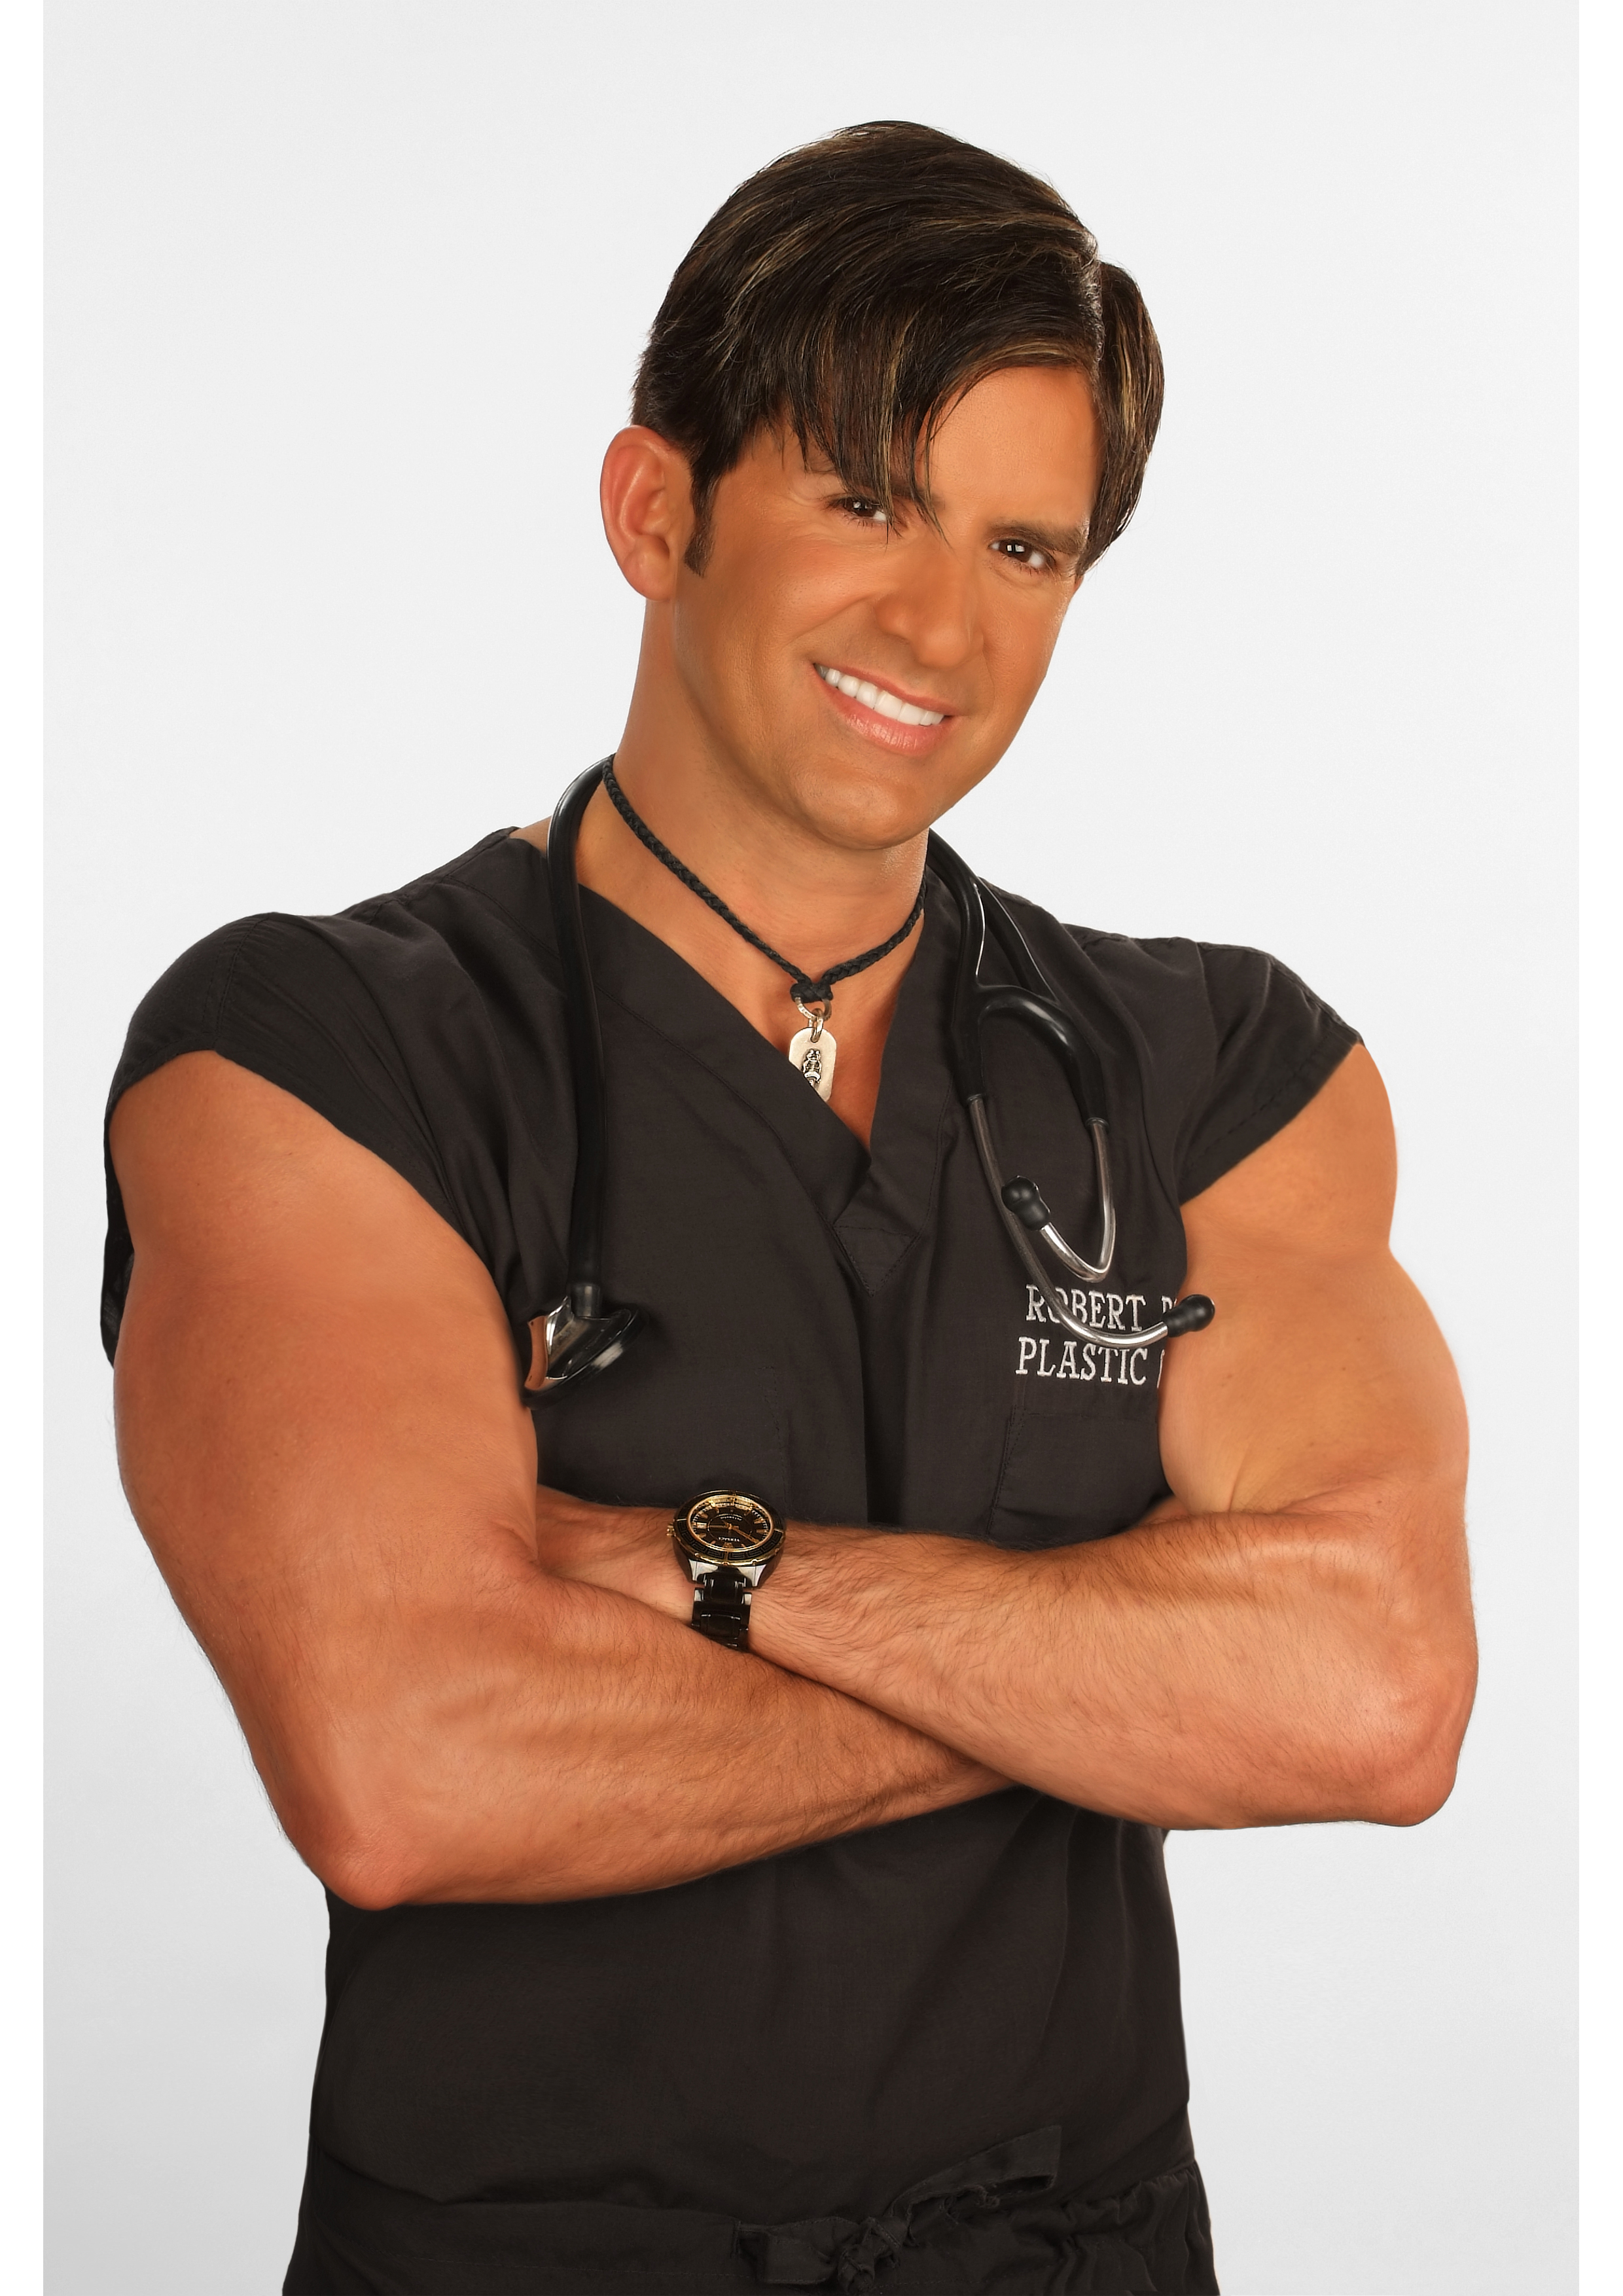 dr rey plastic surgery beverly hills photo - 1